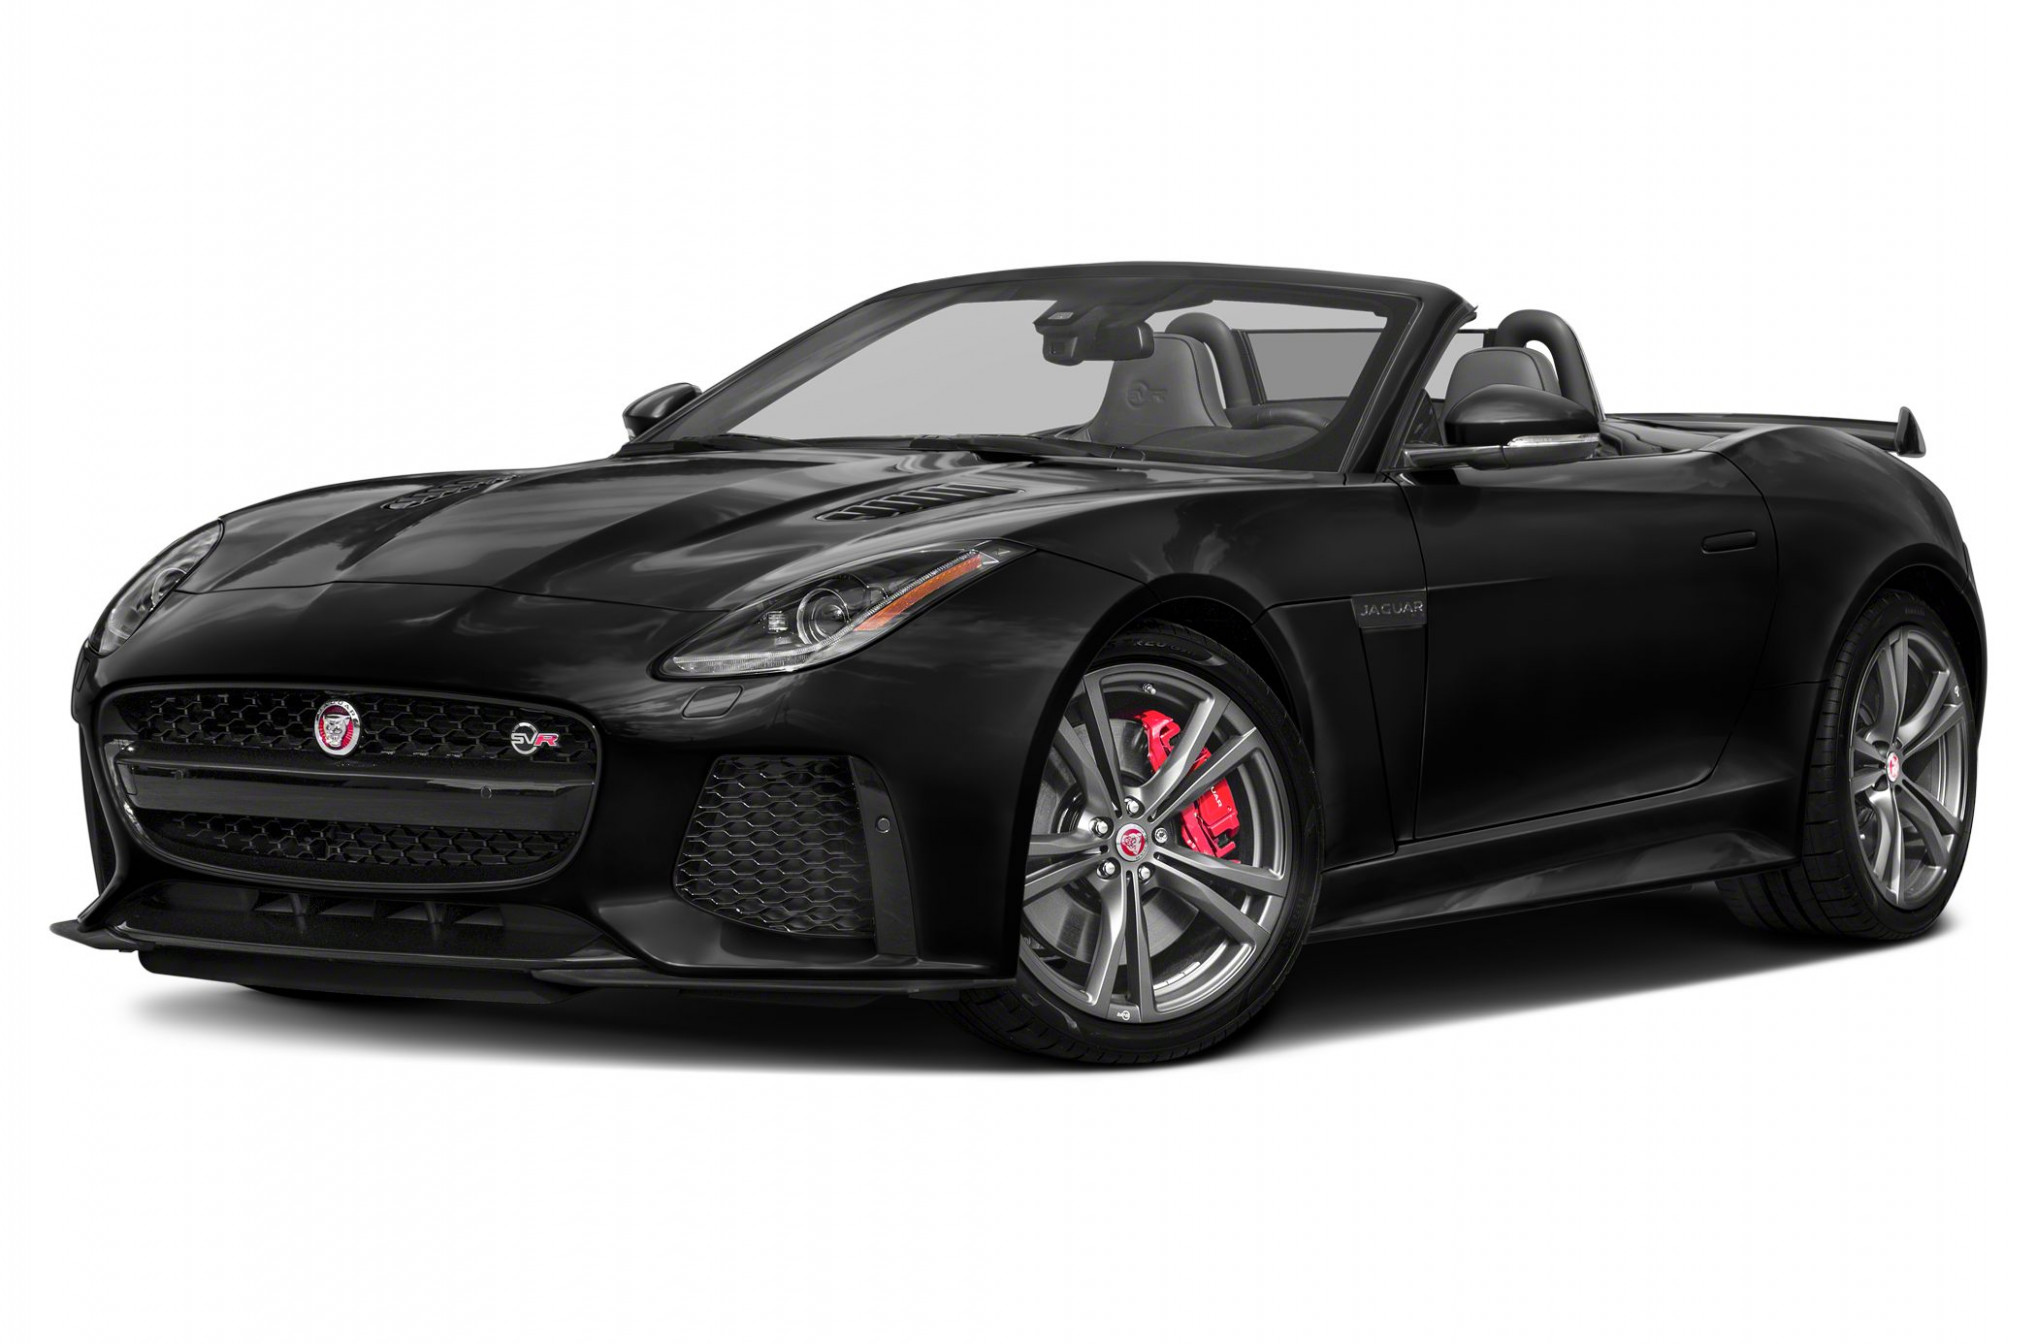 6 Jaguar F-TYPE SVR 6dr All-wheel Drive Convertible Pictures - 2020 jaguar convertible for sale